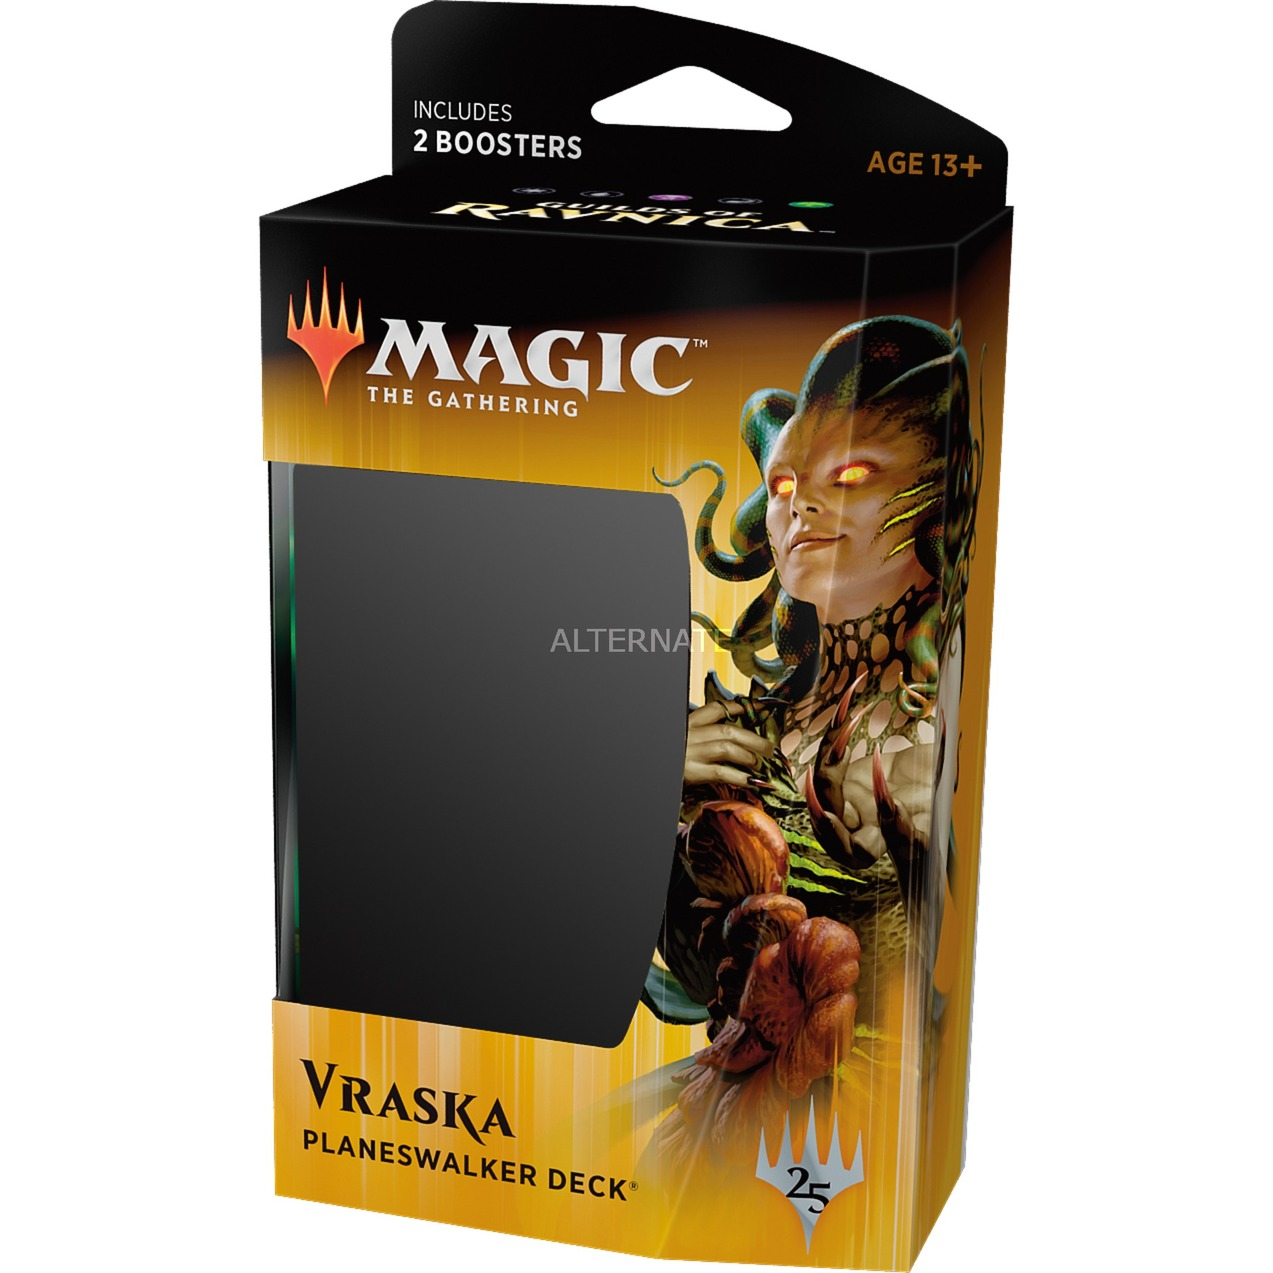 Magic: The Gathering - Guilds of Ravnica Planeswalker Deck Ral englisch, Juegos de cartas